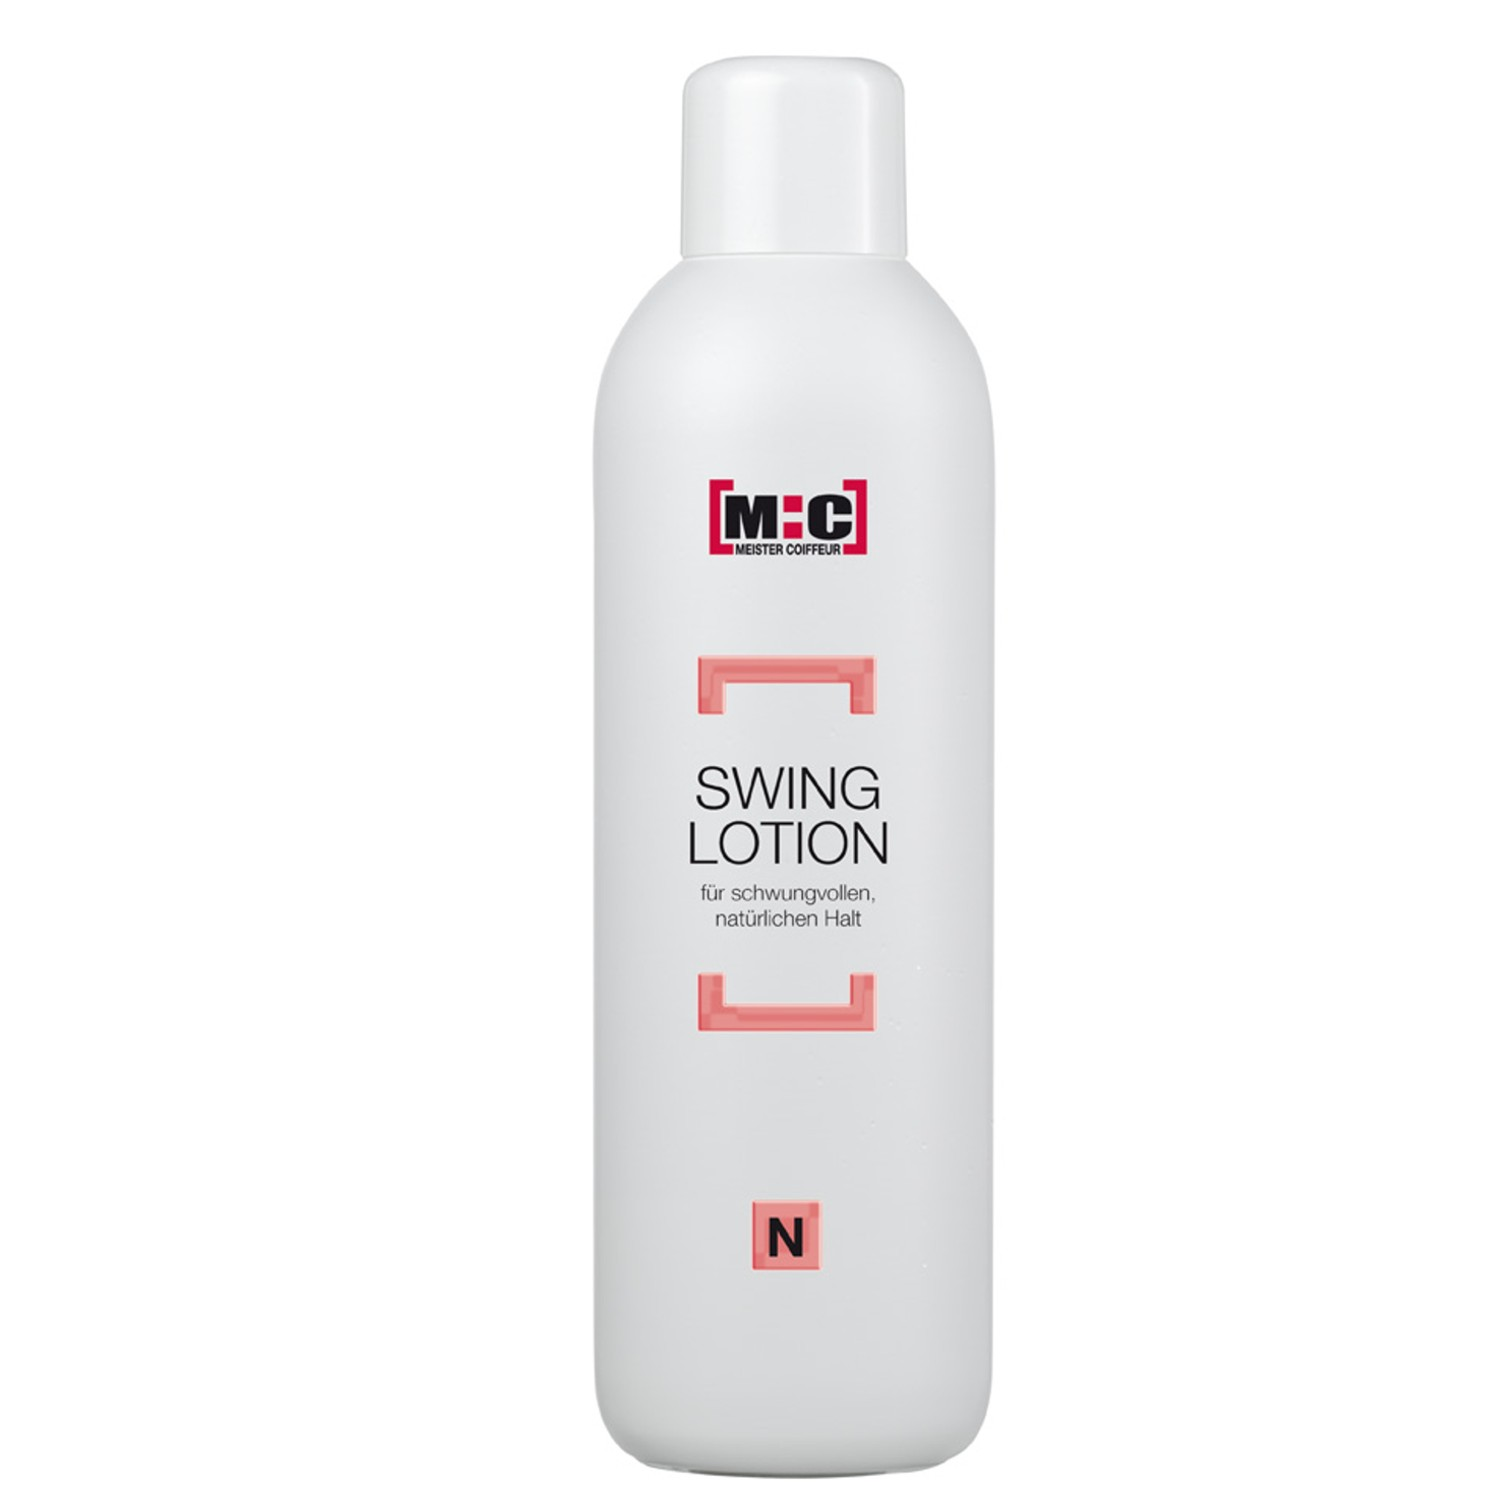 Meister Coiffeur M:C Swing Lotion N 1 L